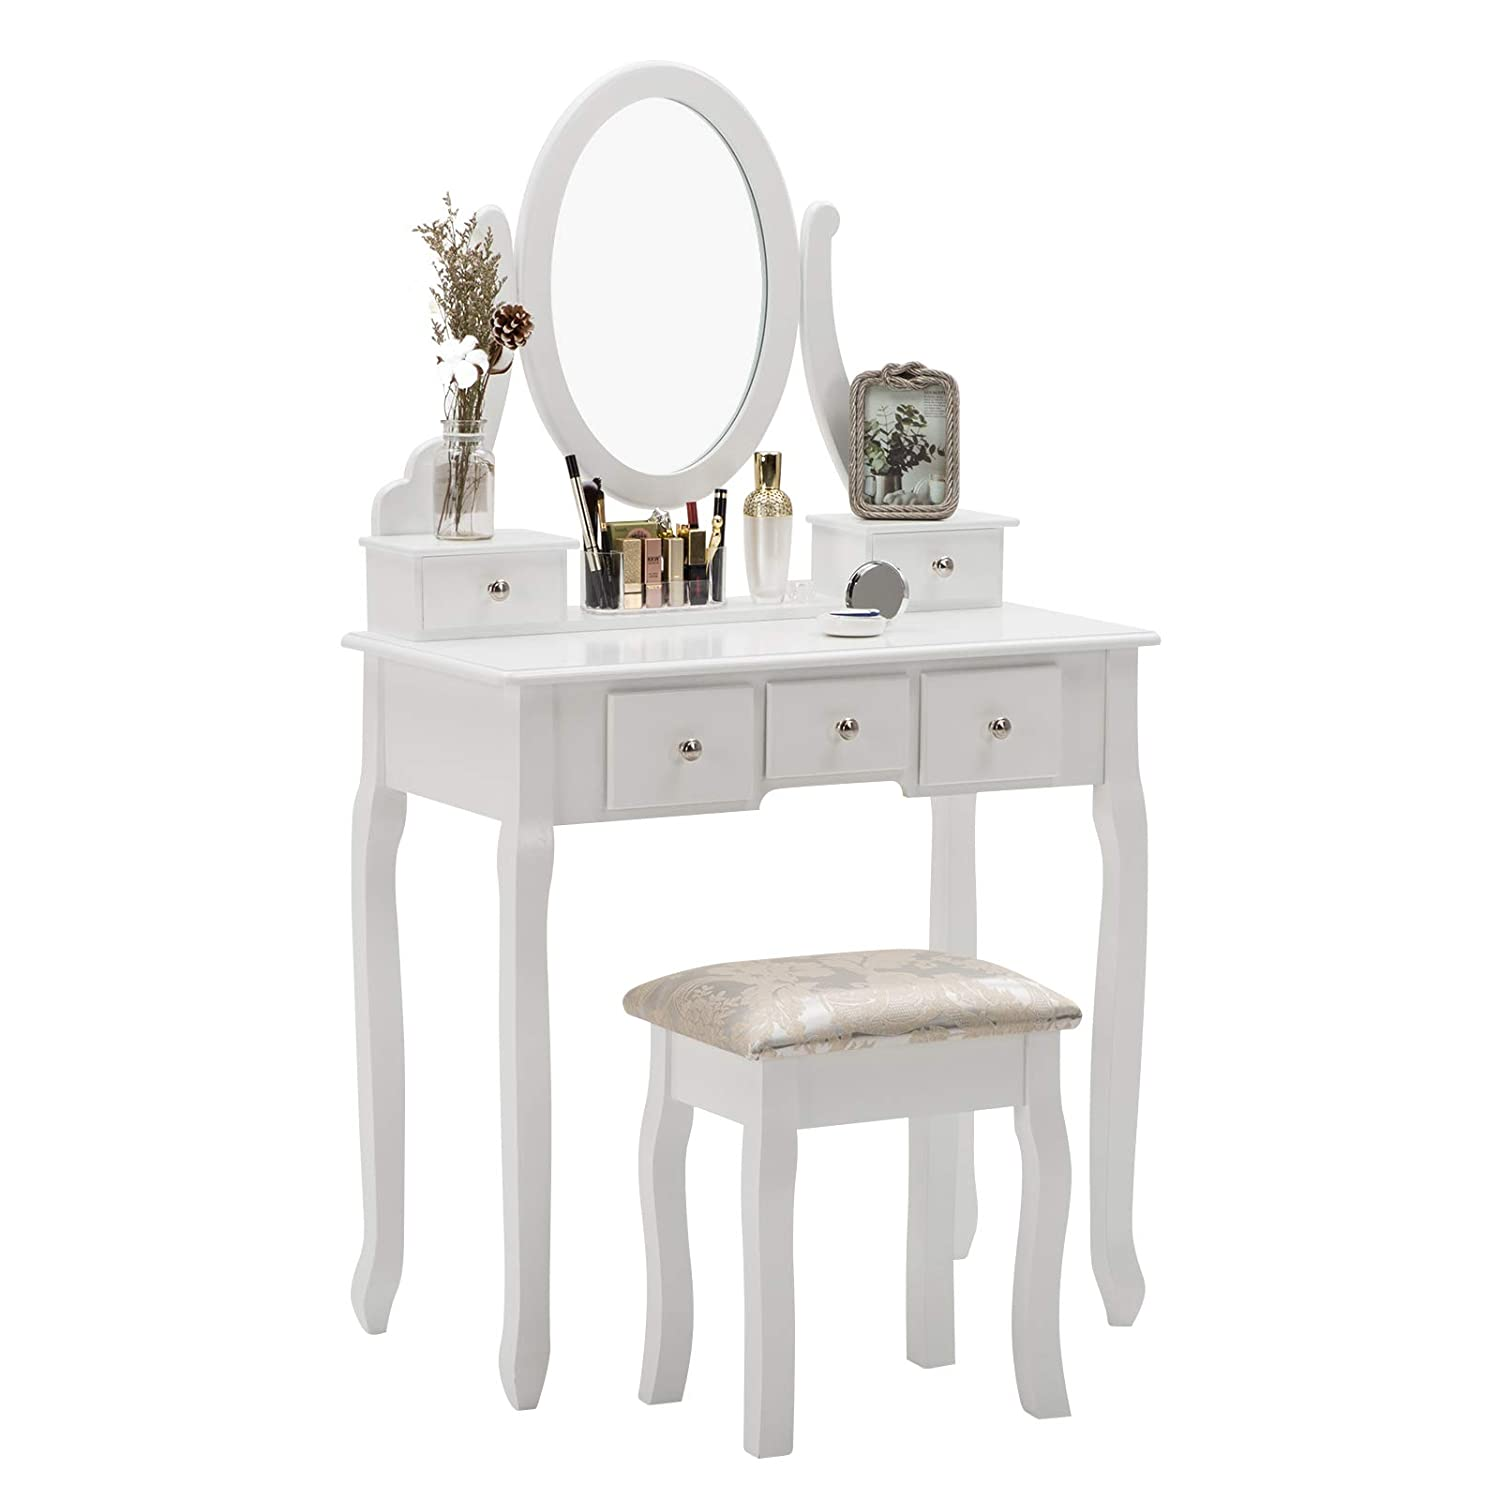 Vanity Sets, Unihome Vanity Table with Oval Mirror Dressing Desk w/Cushioned Stool Bedroom Makeup Table 5 Drawers White Makeup Vanity for Bedroom